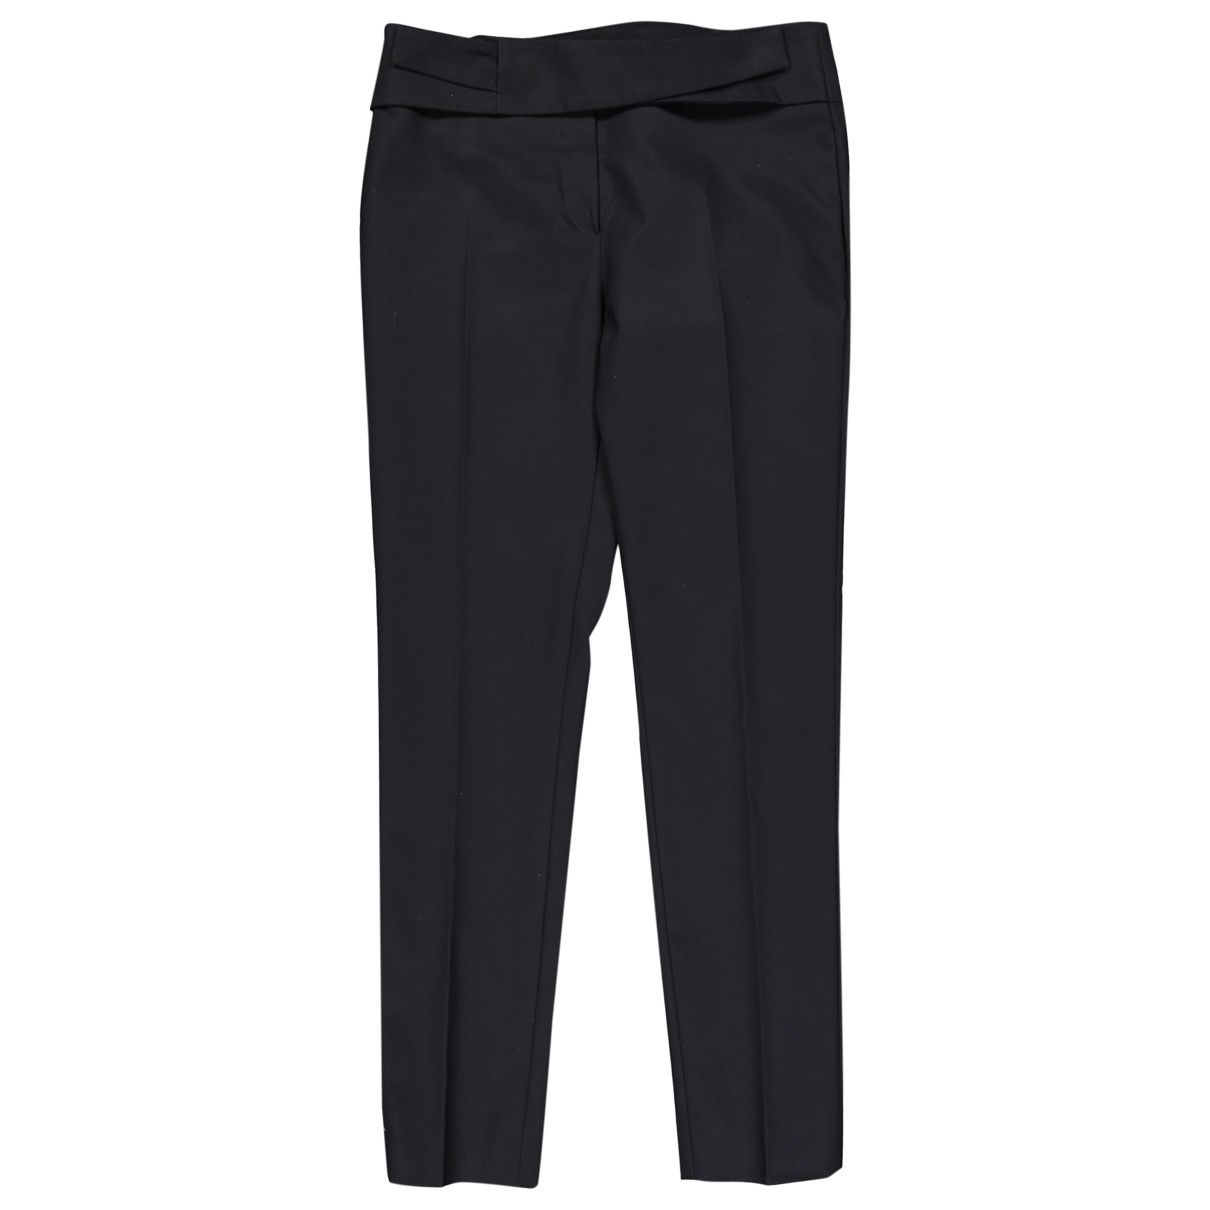 Dior \N Black Cotton Trousers for Women 36 FR